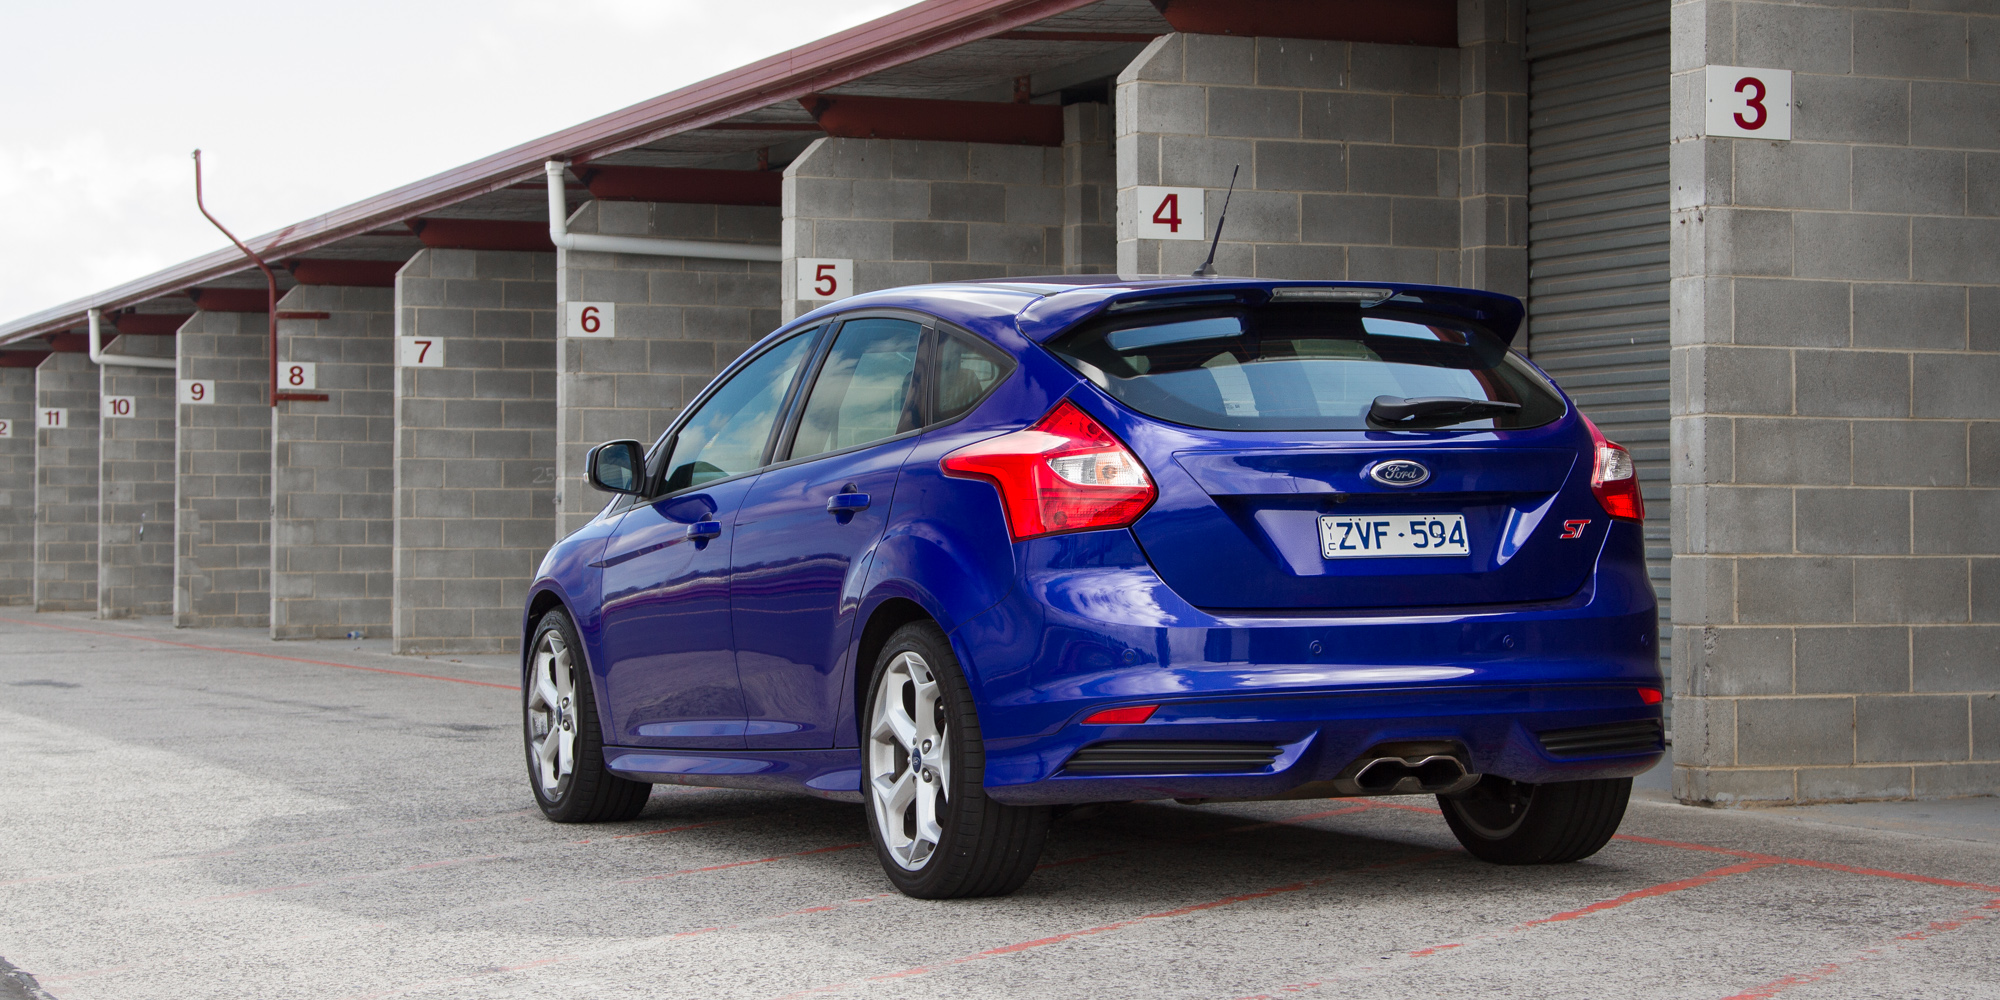 2014 ford focus st review sandown raceway weekender photos. Cars Review. Best American Auto & Cars Review